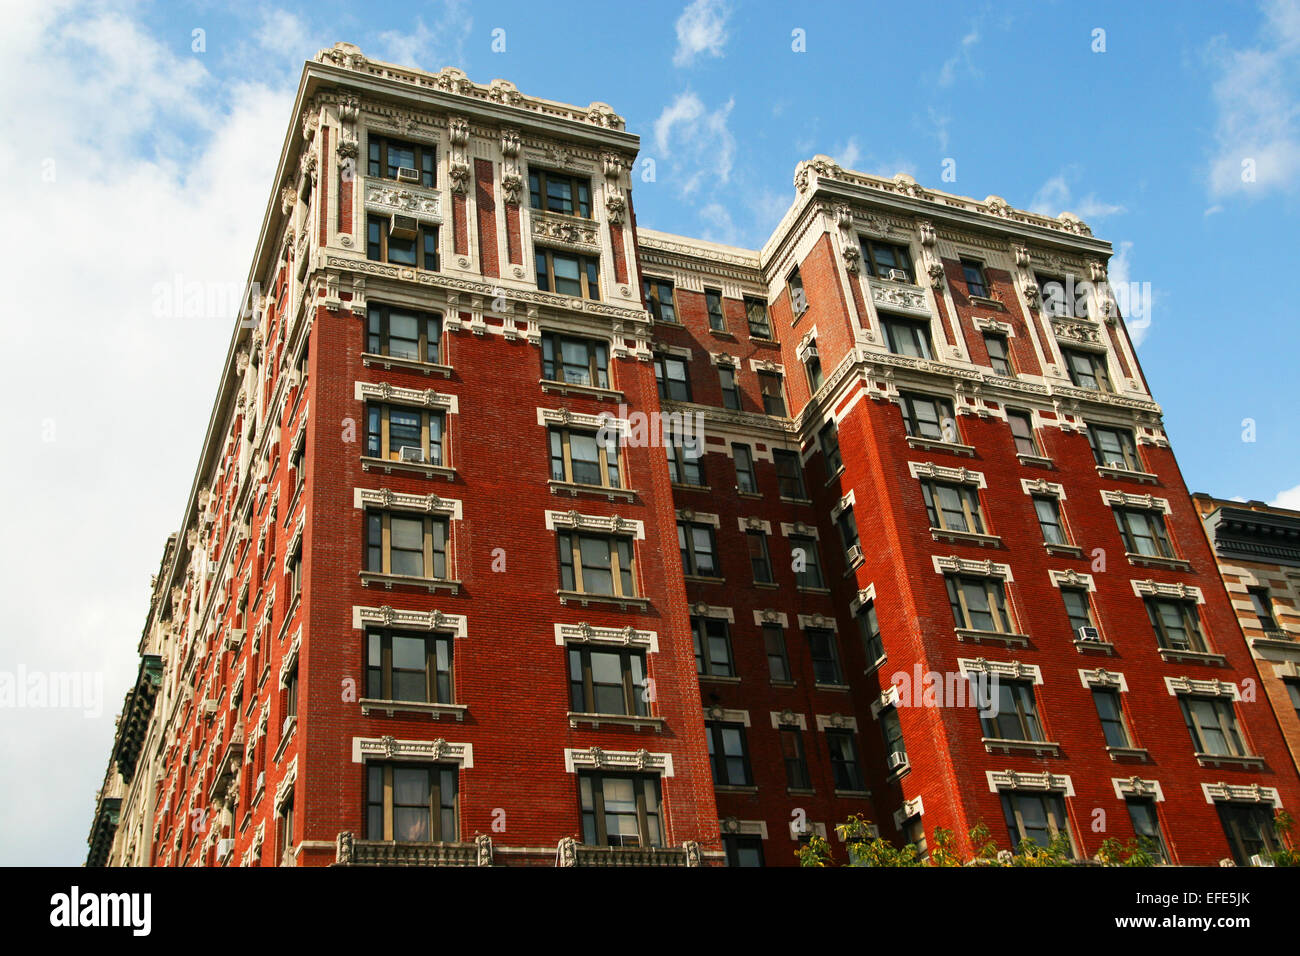 Rotes Haus in New York - Stock Image